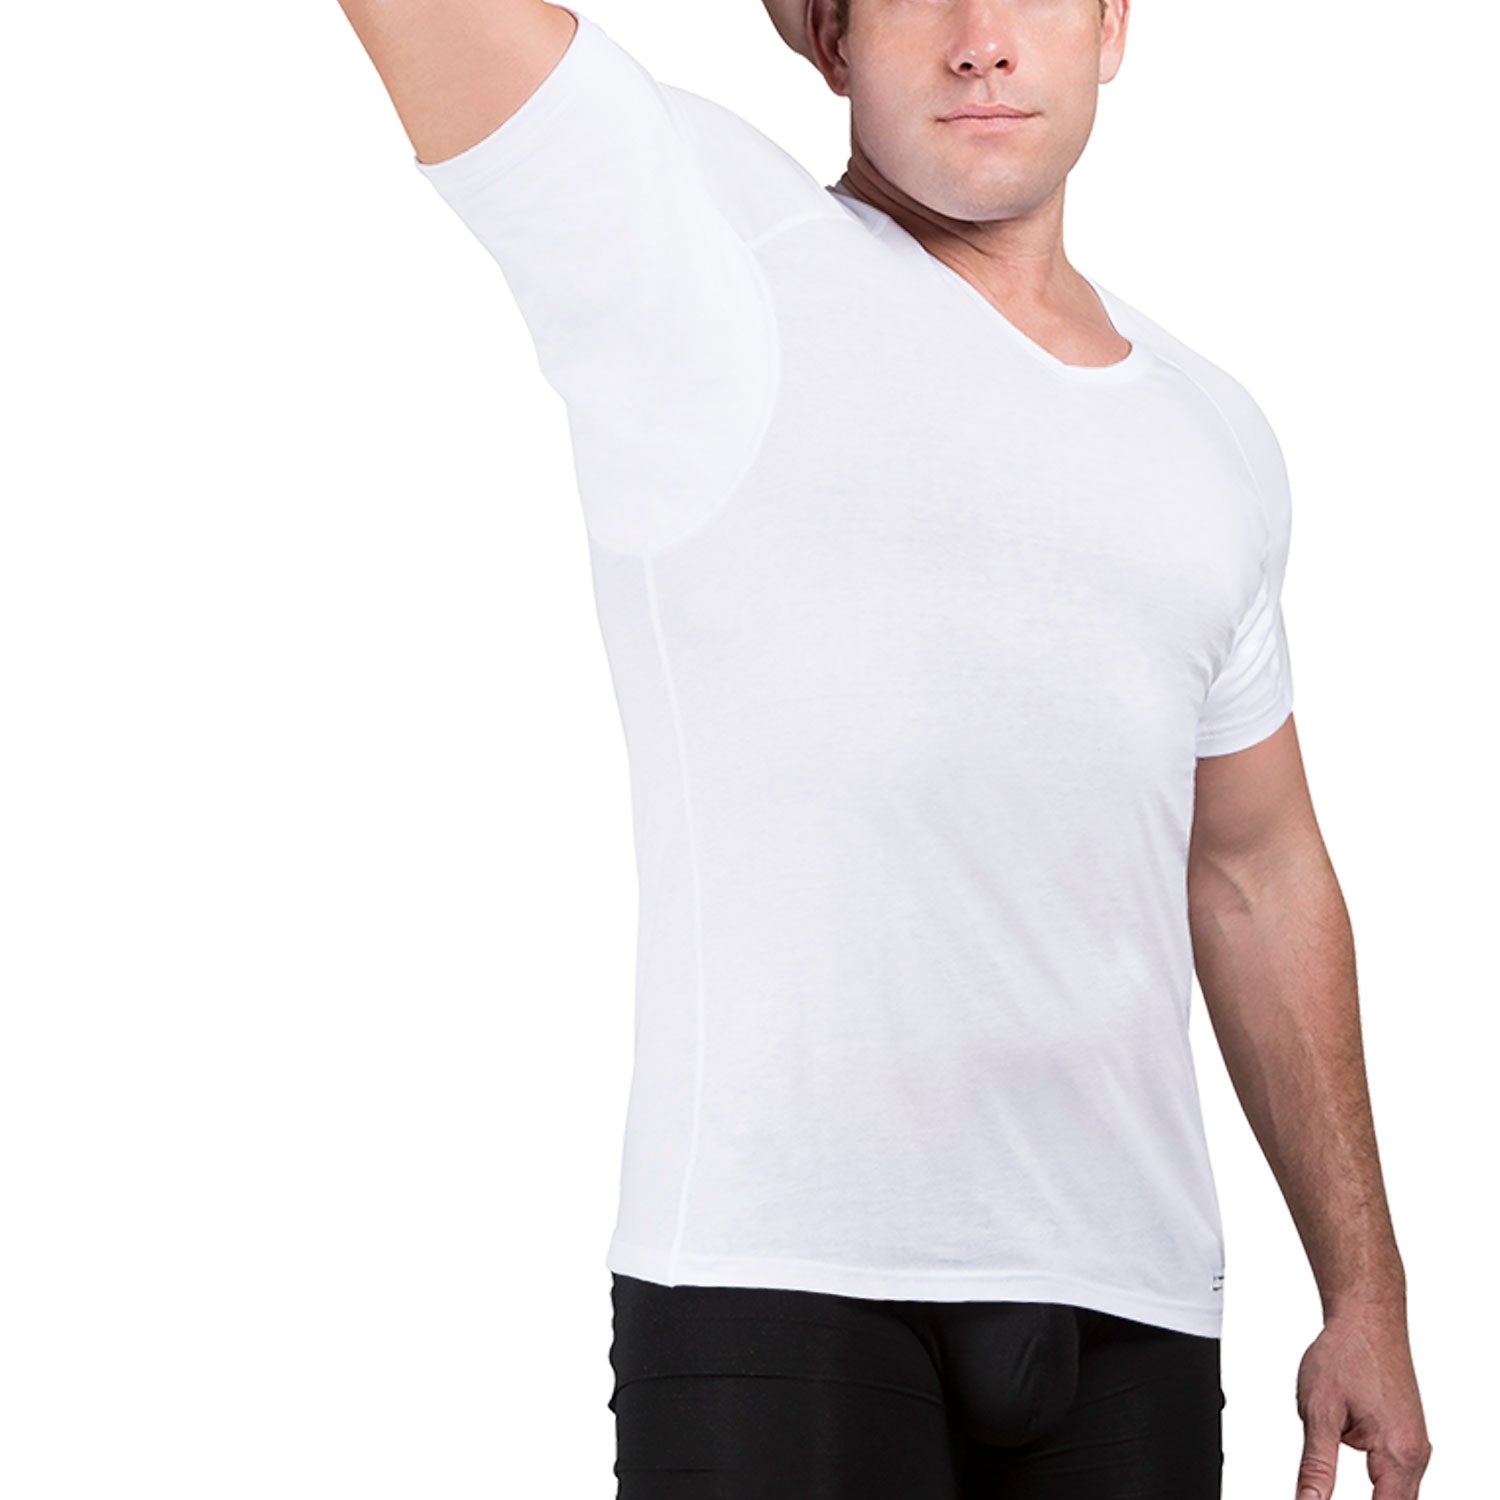 Sweat Defense Undershirt | V Neck | Underarm Sweat Proof Cotton